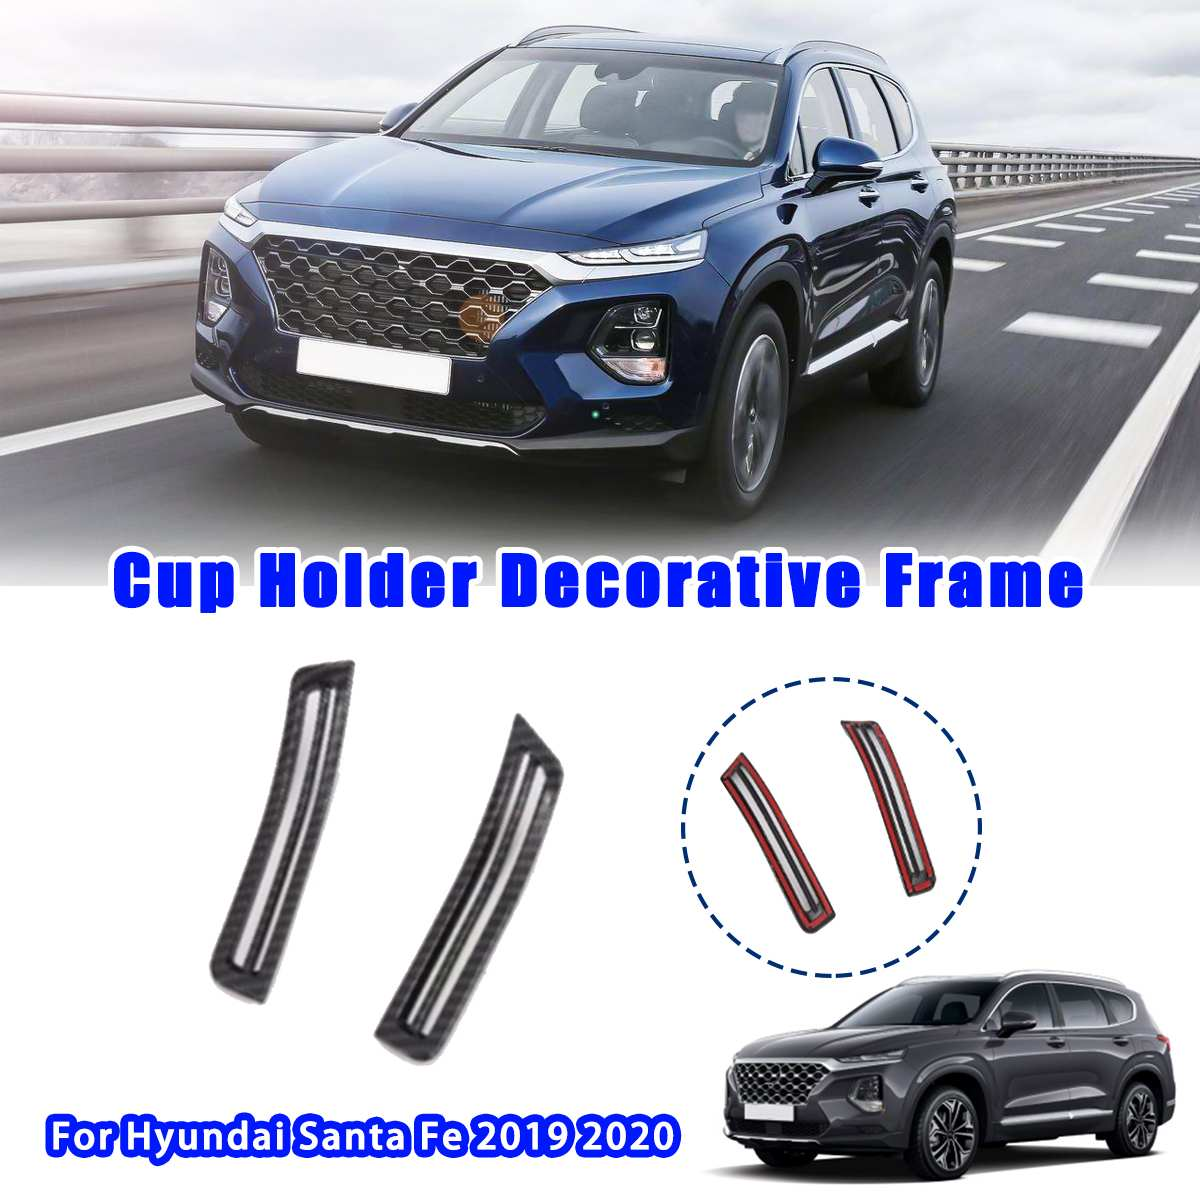 2x Car Interior Left Right Side Air Conditioning Vent Cover Sticker Trim Styling Accessories For Hyundai Santa Fe 2019 2020